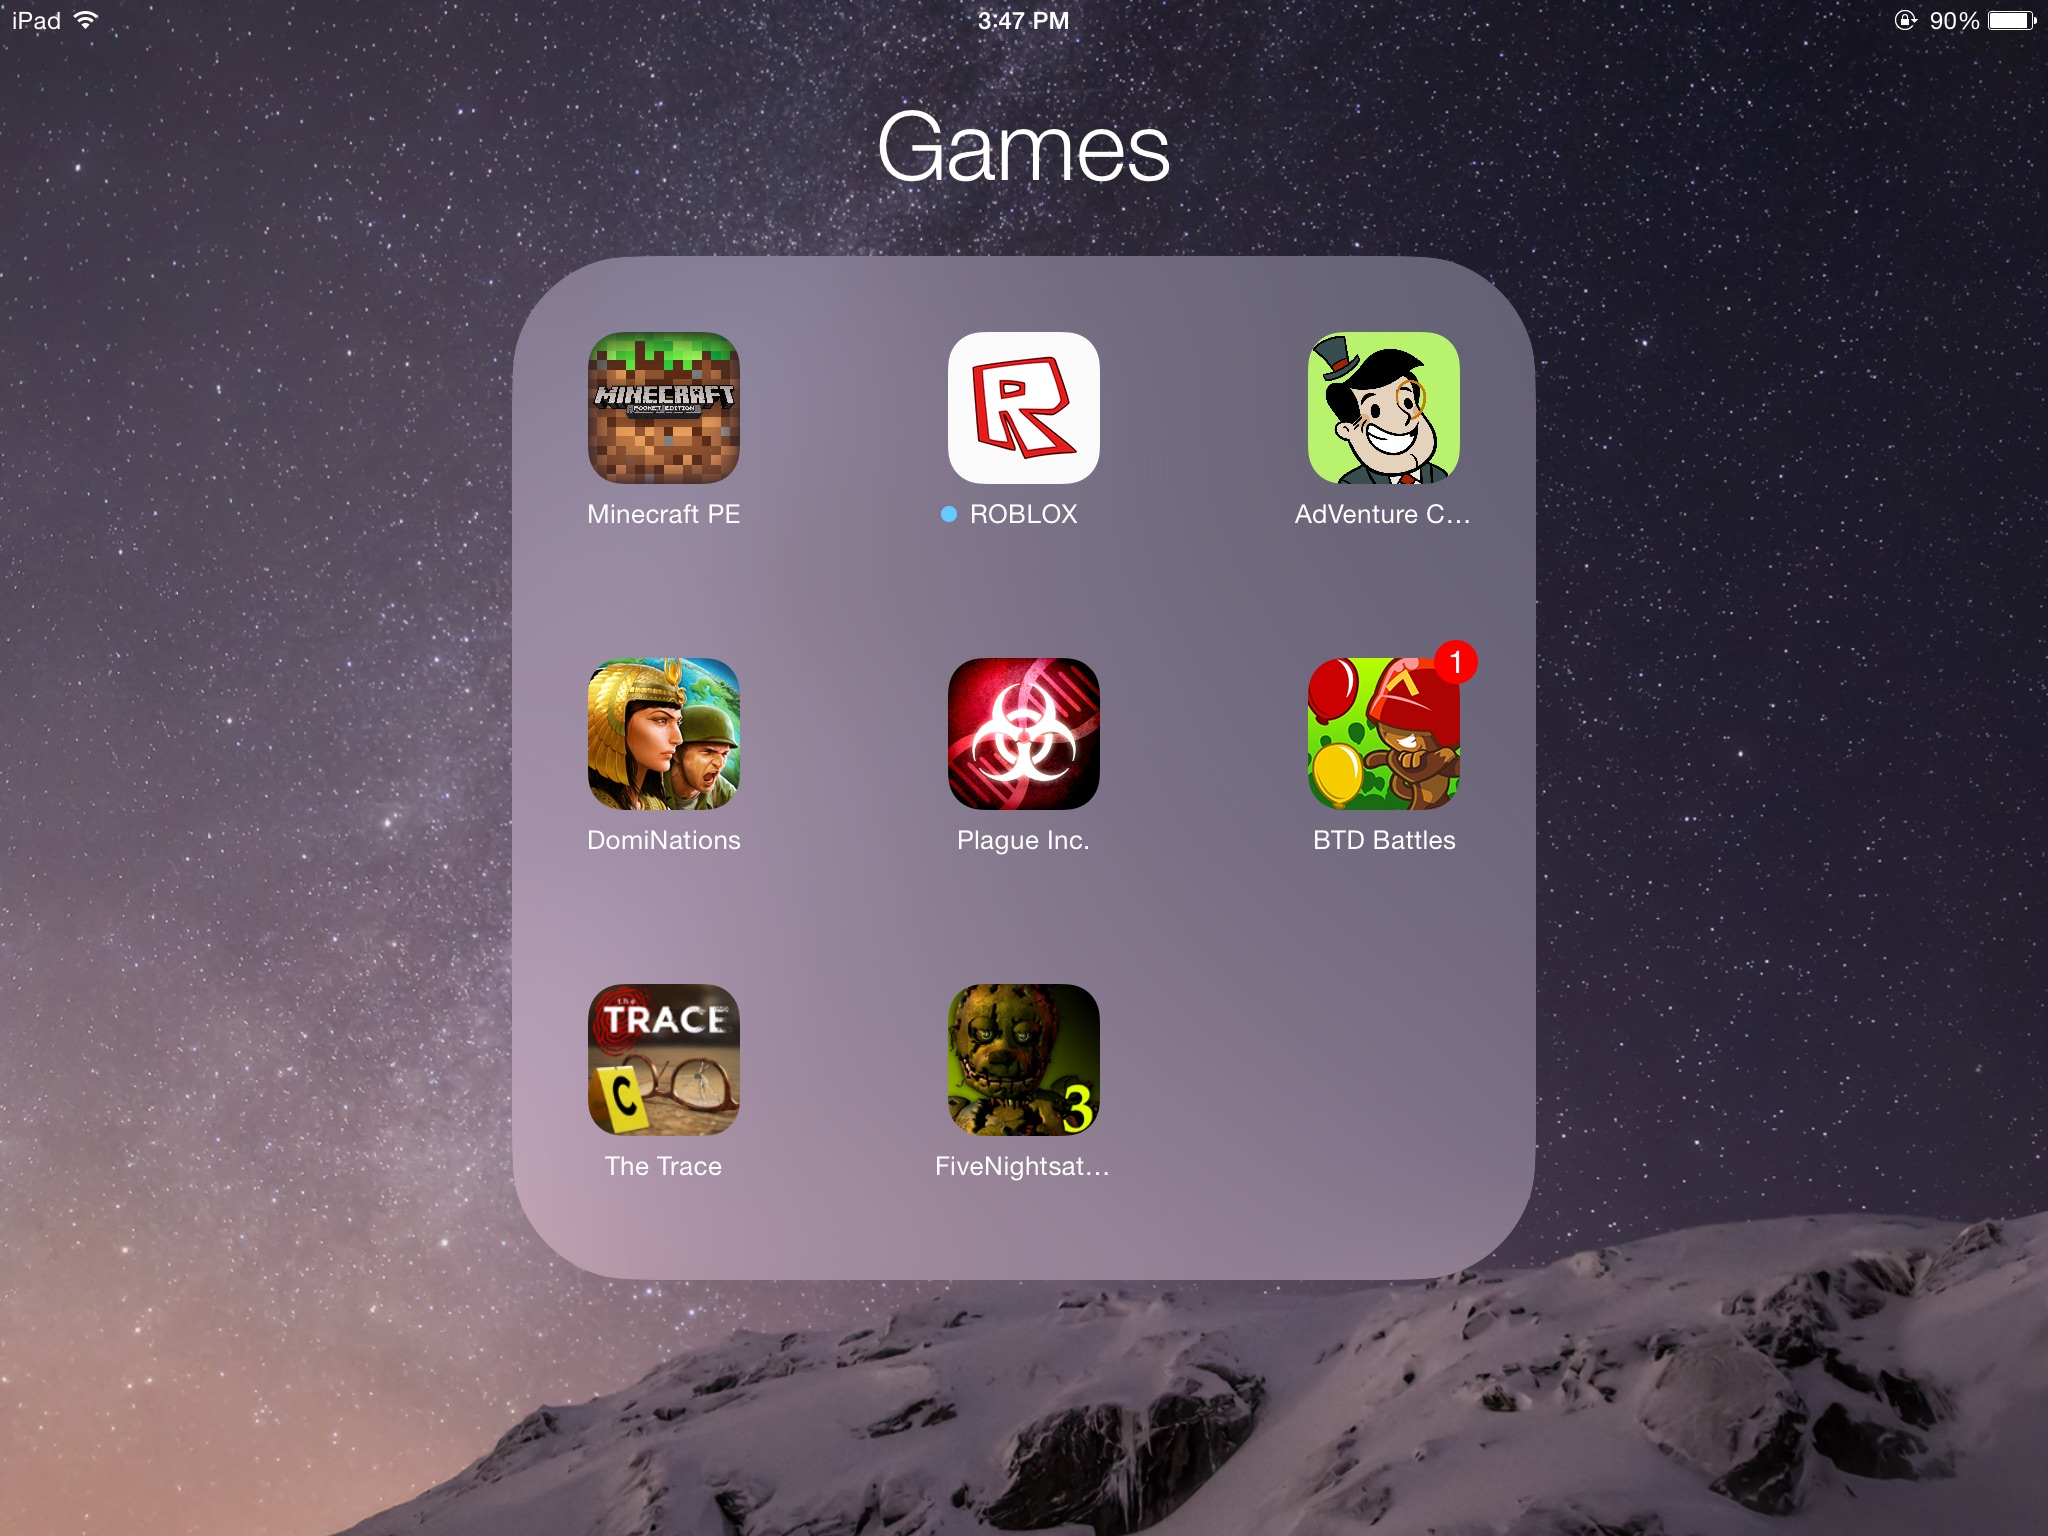 Game Free Ipad Wallpapers: Any Games For IPad Air 2?